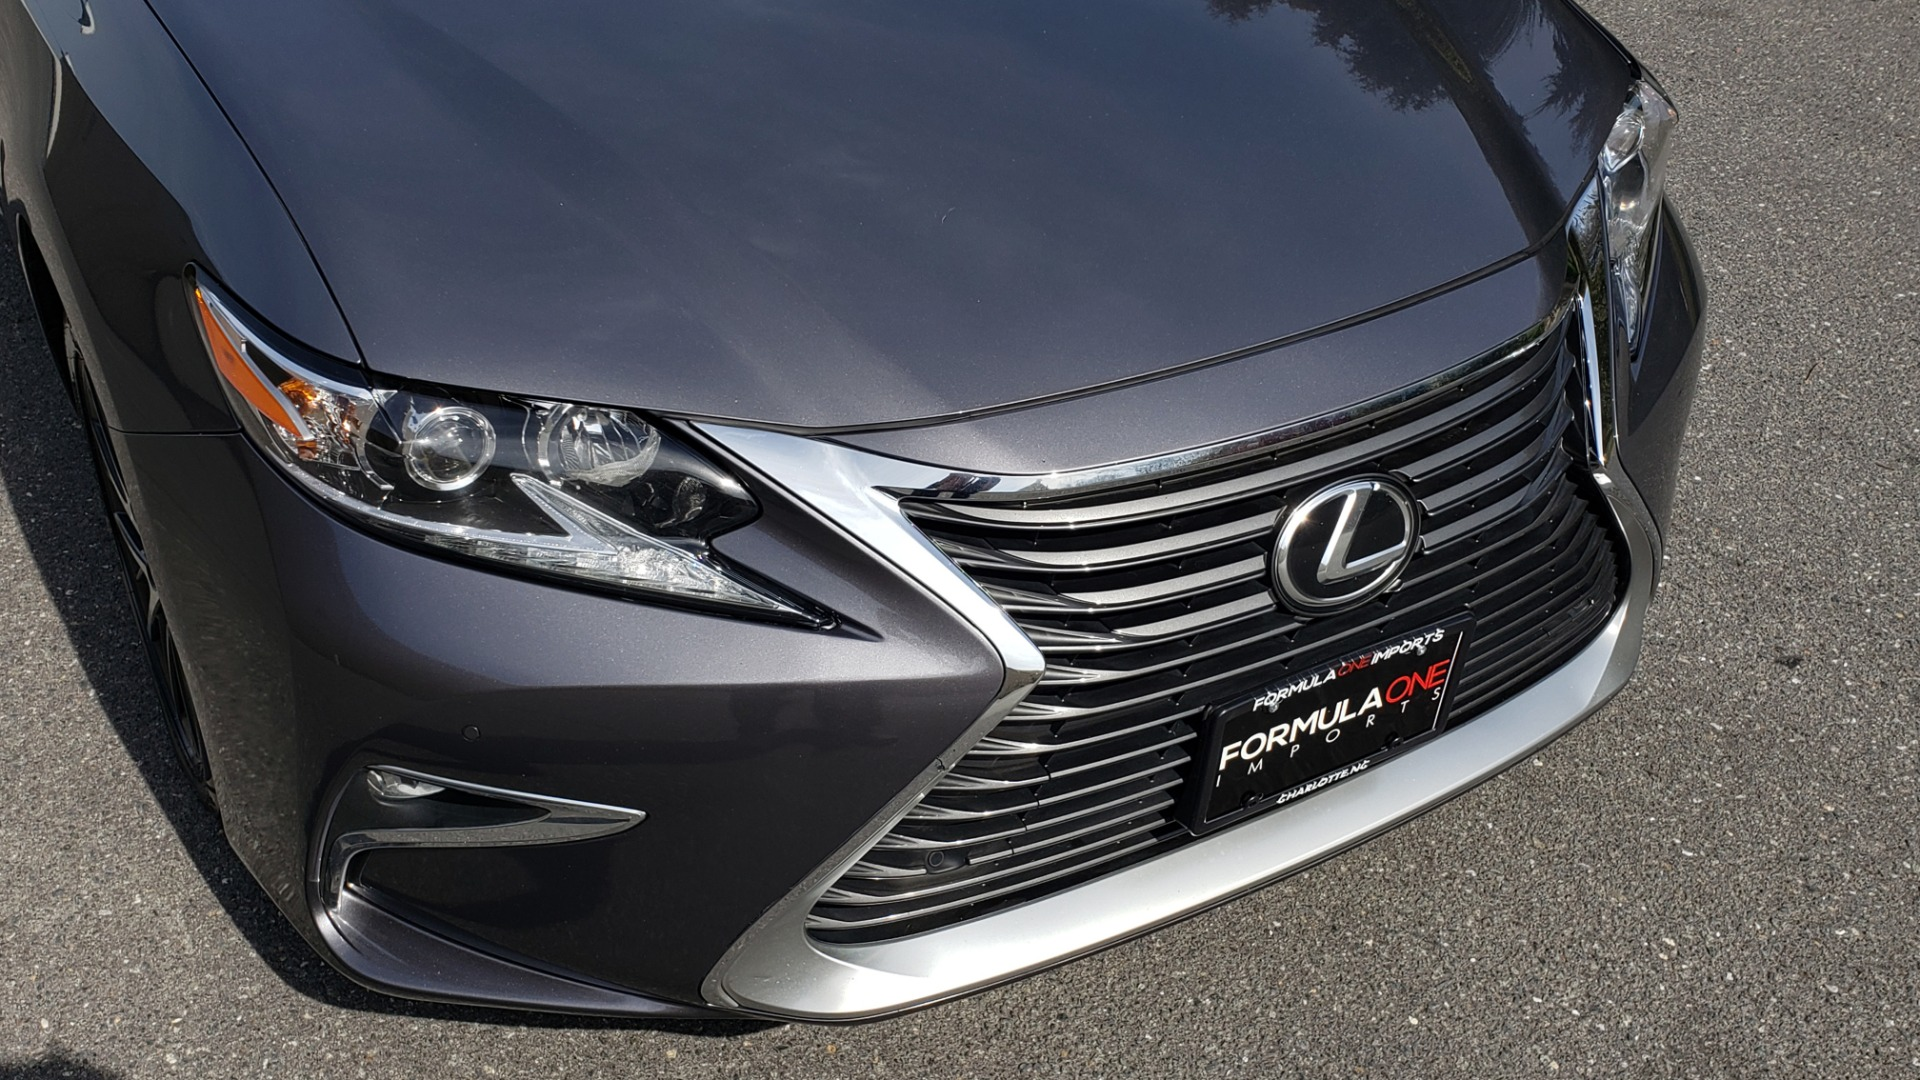 Used 2016 Lexus ES 350 4-DR PREMIUM / SUNROOF / BSM / REARVIEW / VENT STS for sale Sold at Formula Imports in Charlotte NC 28227 21